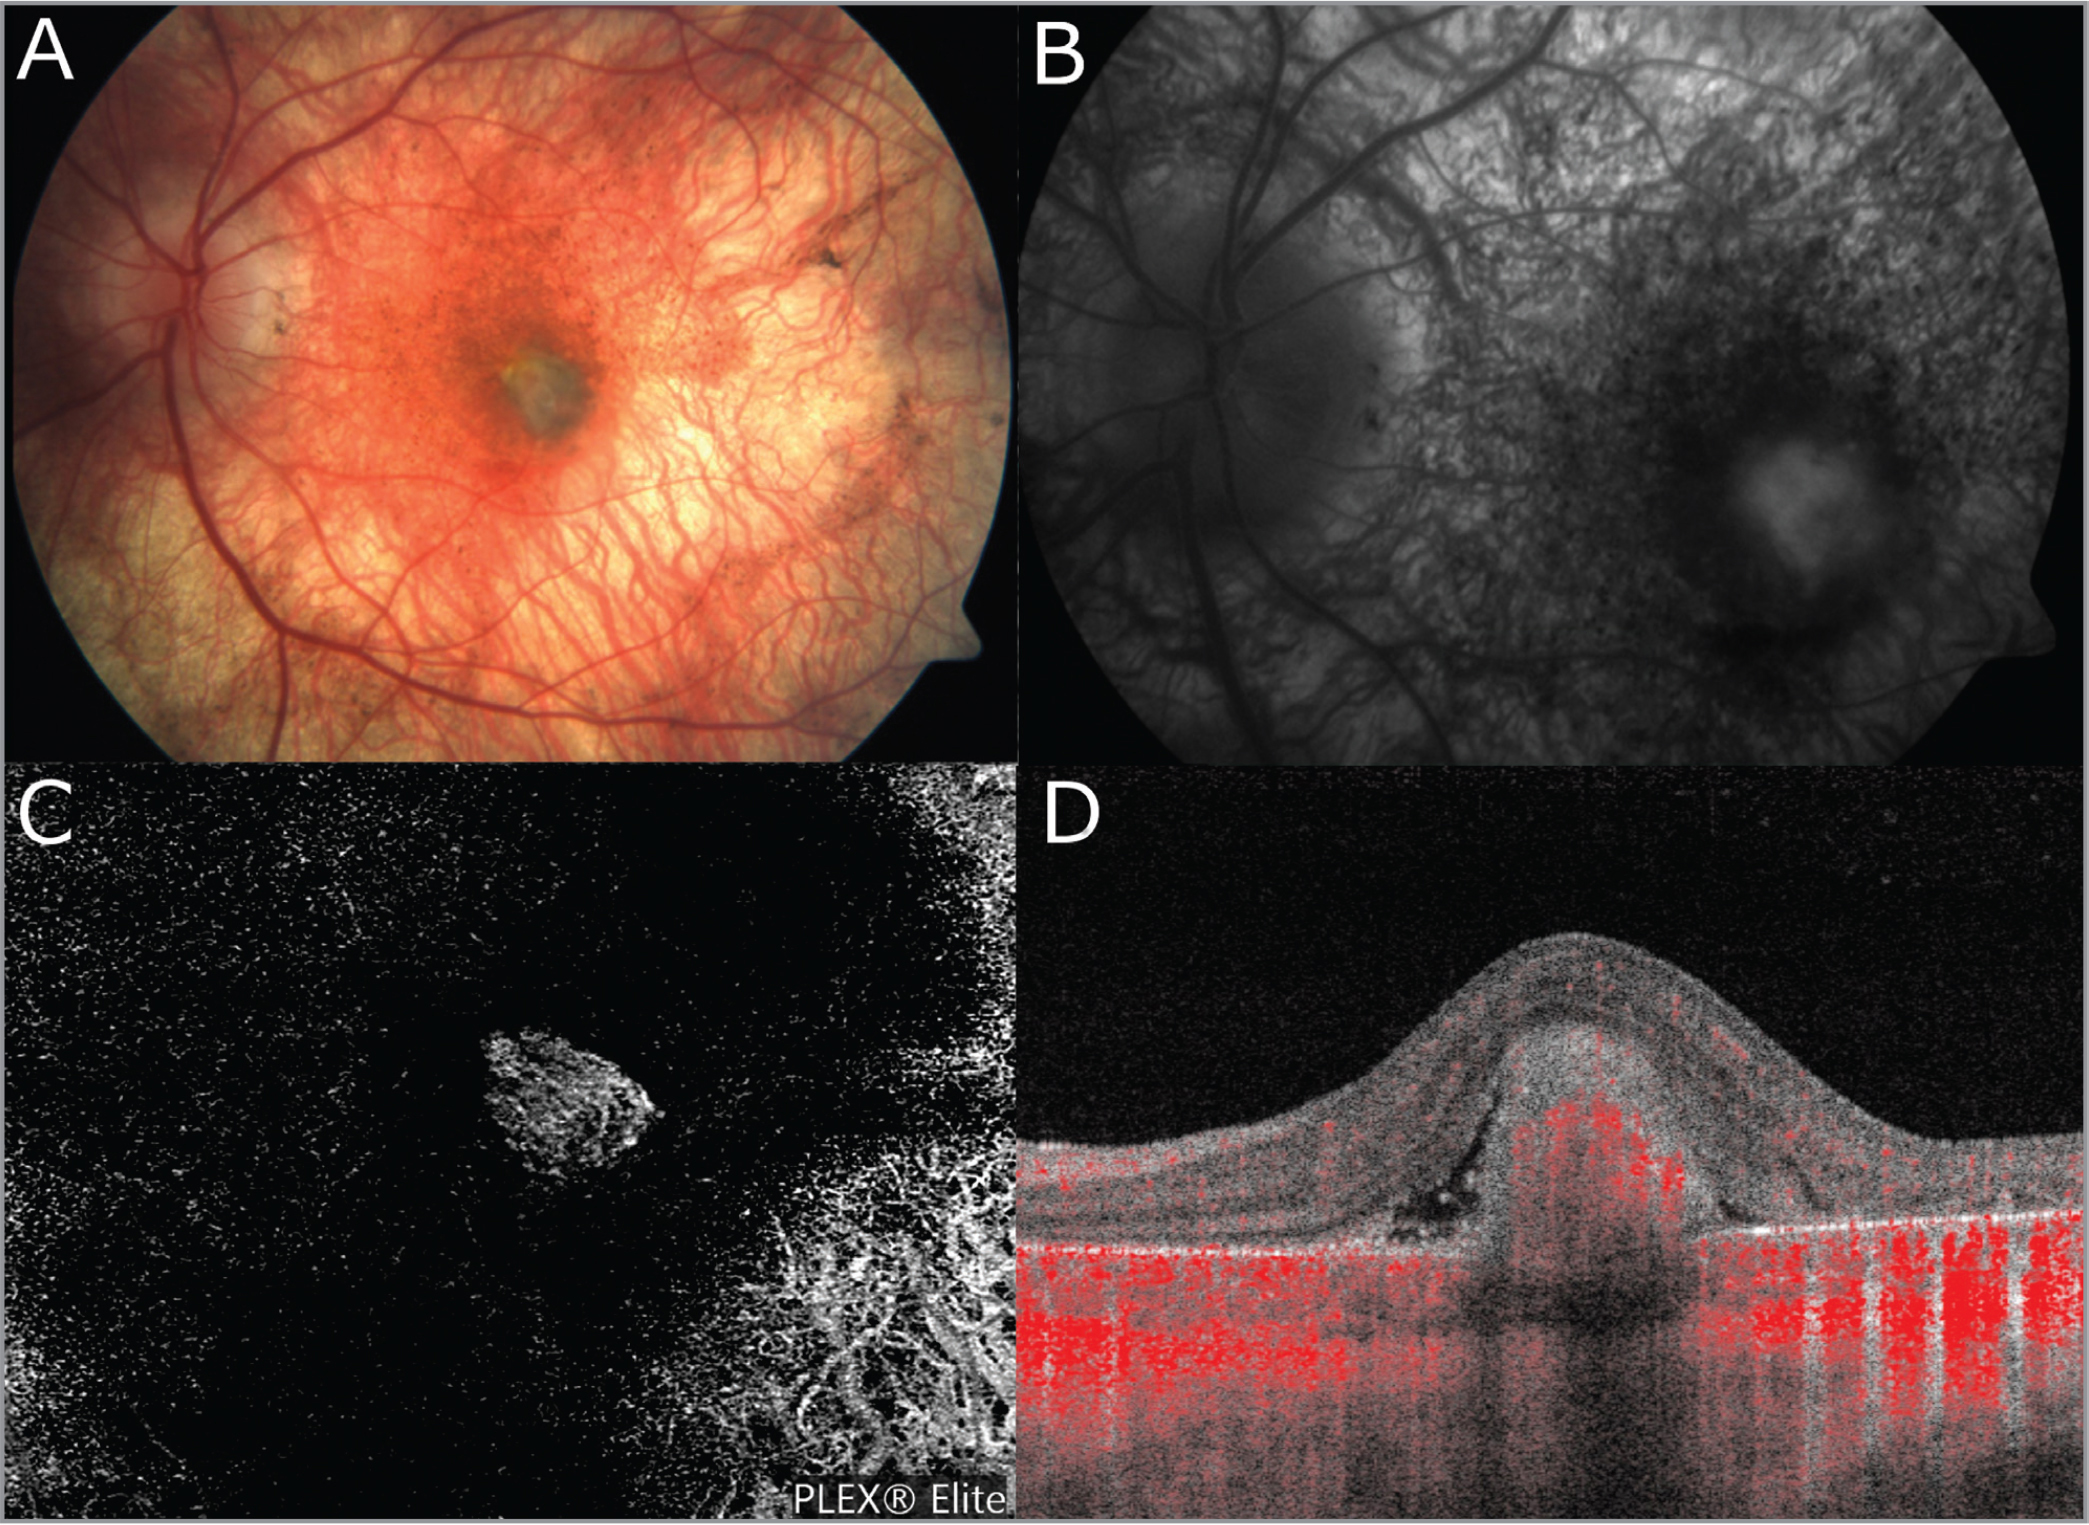 Multimodal imaging of choroidal neovascular membrane (CNVM) in choroideremia. (A) Color fundus photograph of the left eye (OS). Note the subfoveal gray membrane and peripheral choriocapillaris and retinal pigmentary epithelium atrophy. (B) Late-stage fluorescein angiography OS showing leakage corresponding to the location of the subfoveal membrane. (C) En face swept-source optical coherence tomography angiography (SS-OCTA) 6 mm × 6 mm scan OS showing lacy neovascular network corresponding to CNVM. (D) B-scan SS-OCTA 6 mm × 6 mm scan showing CNVM with associated subretinal fluid. Note the positive Doppler flow through the CNVM.